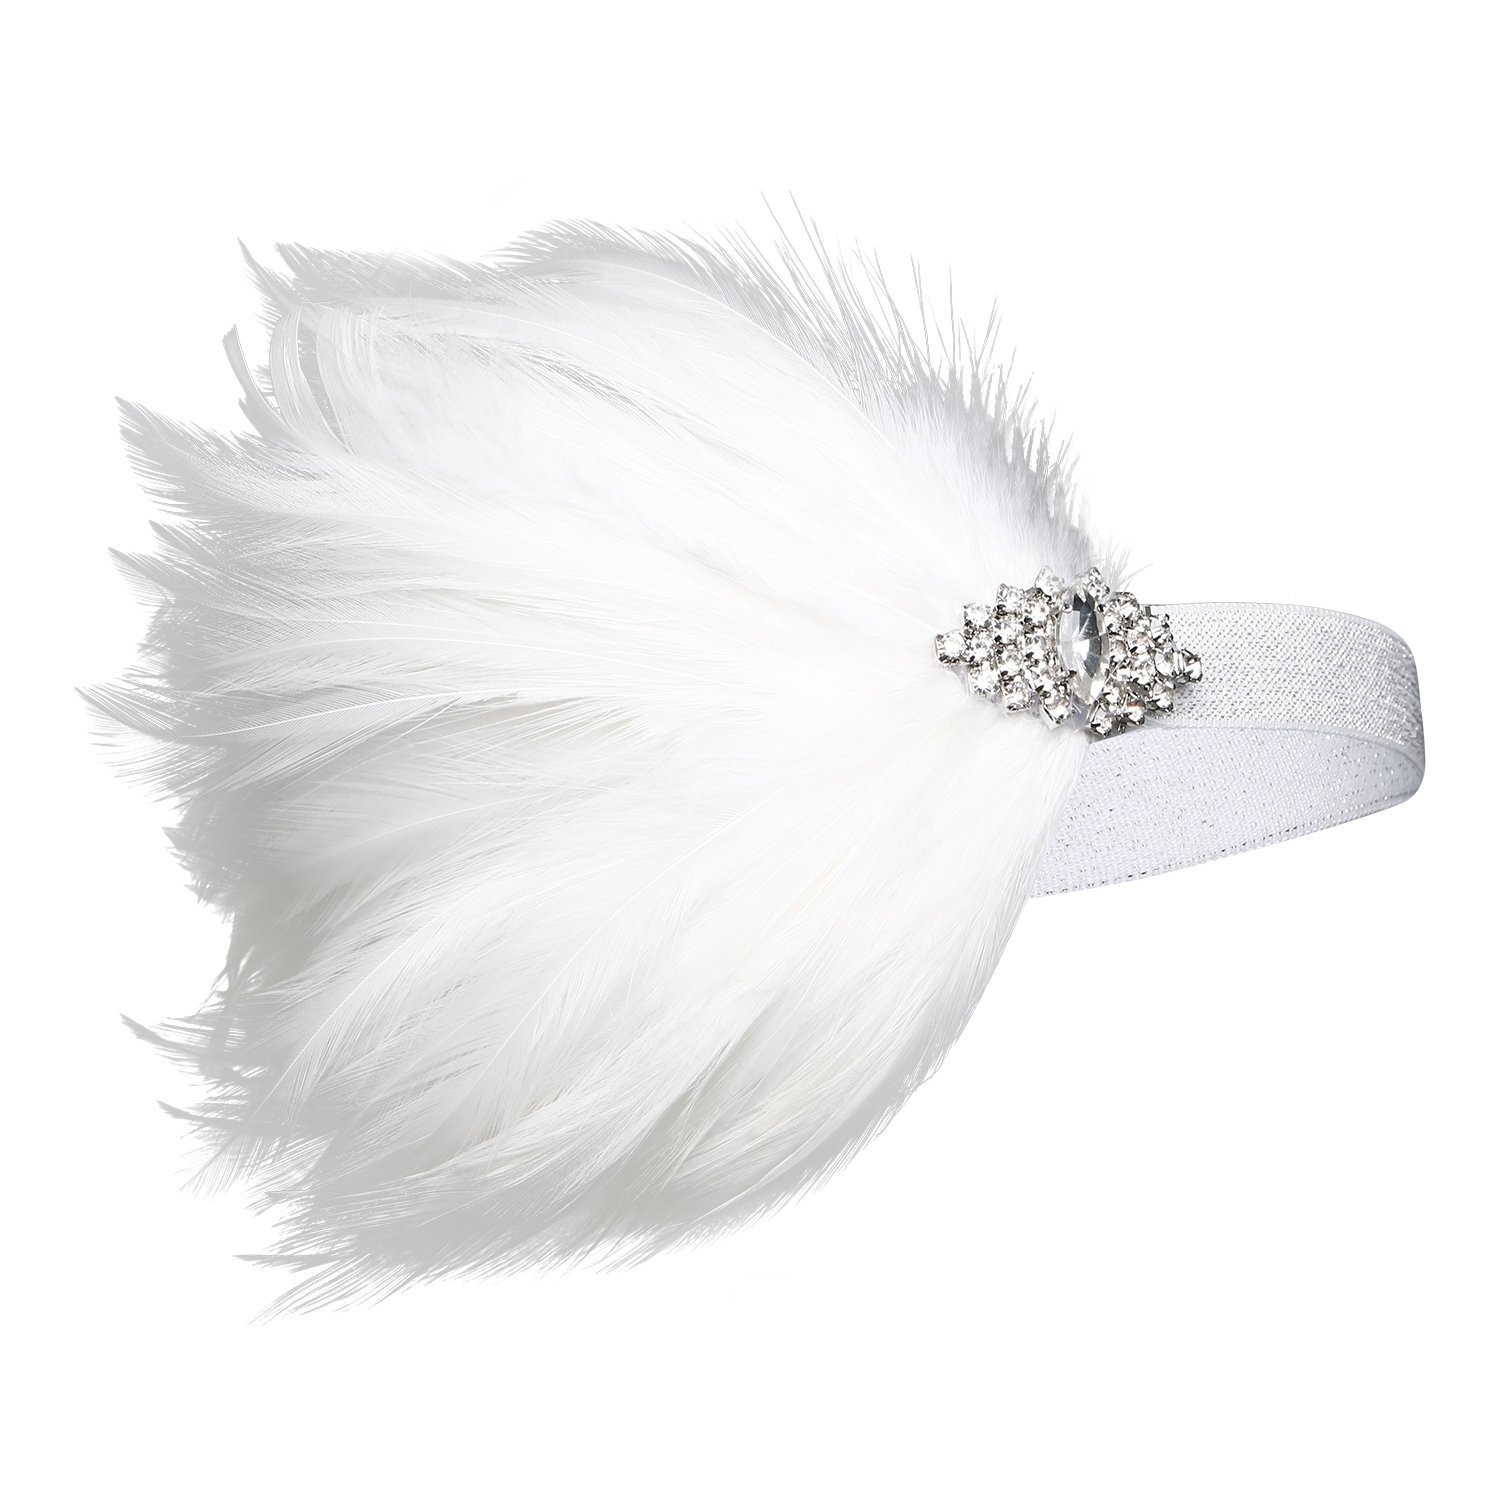 BABEYOND 1920s Flapper Headpiece 20s Great Gatsby Headband White Feather Headband 1920s Flapper Gatsby Accessories with Crystal (White)